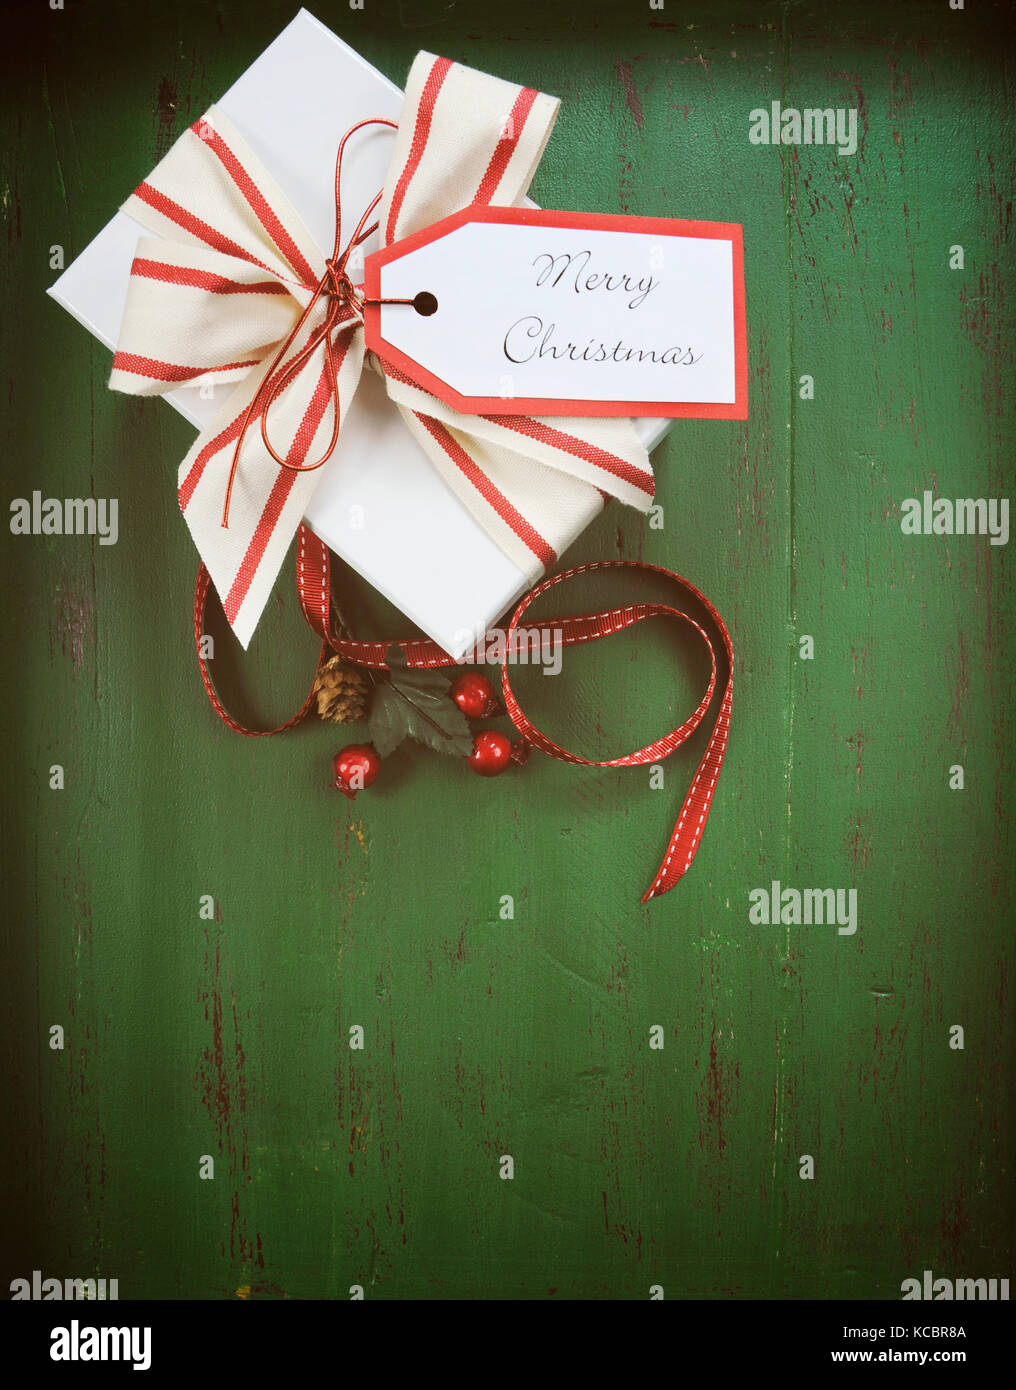 Christmas Holiday Background With Red White Gift Against A Vintage Style Dark Green Recycled Wood Vertical